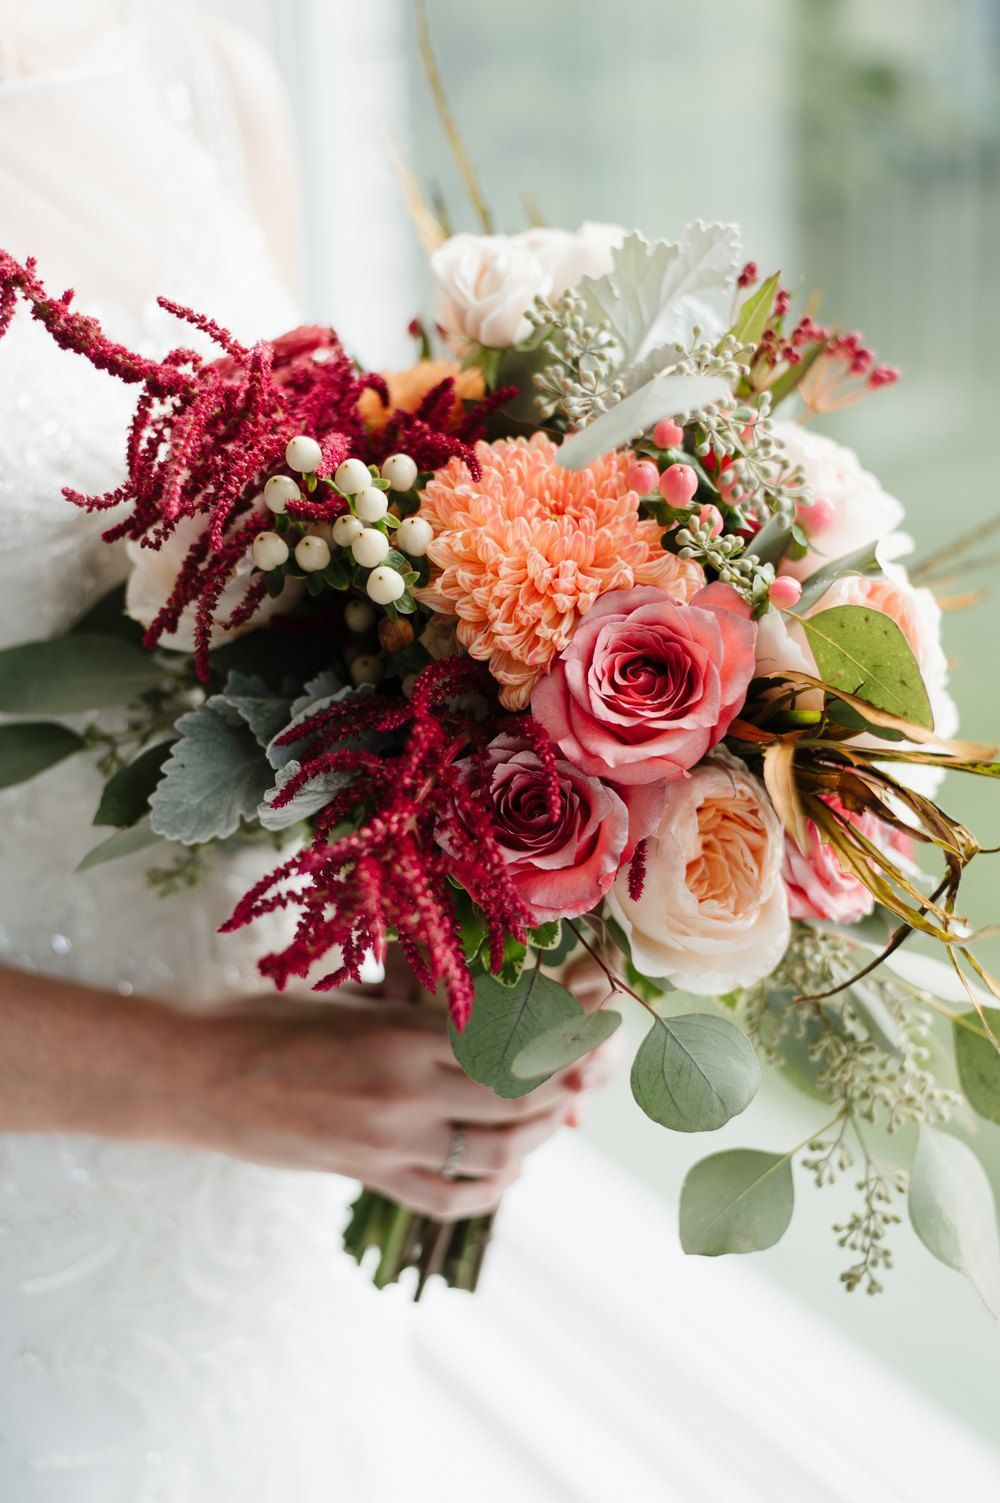 A Wedding Flowers Idea That Benefits Your Community Fall